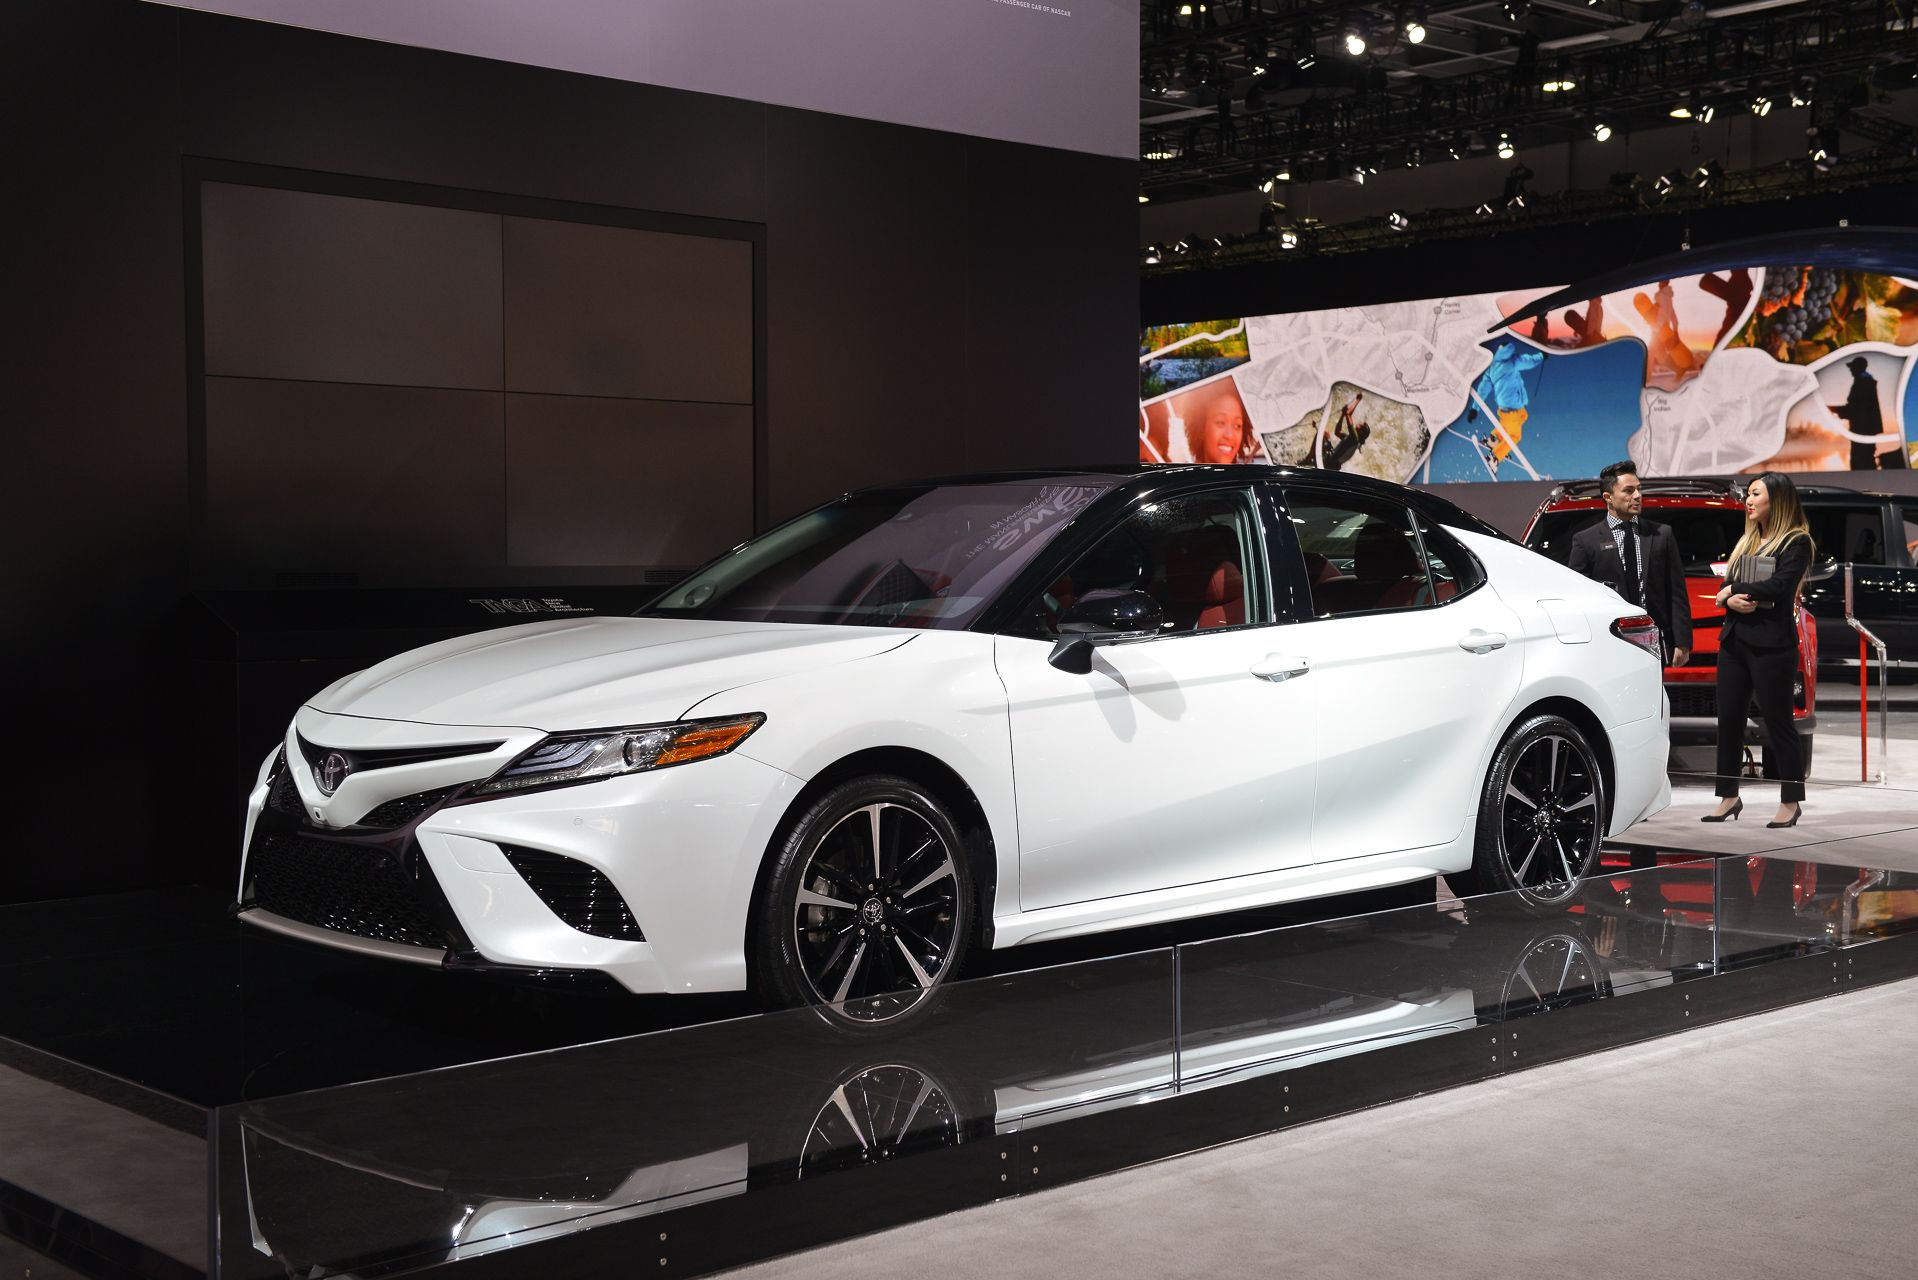 Have you checked out the new features on the new 2018 toyota camry the dual